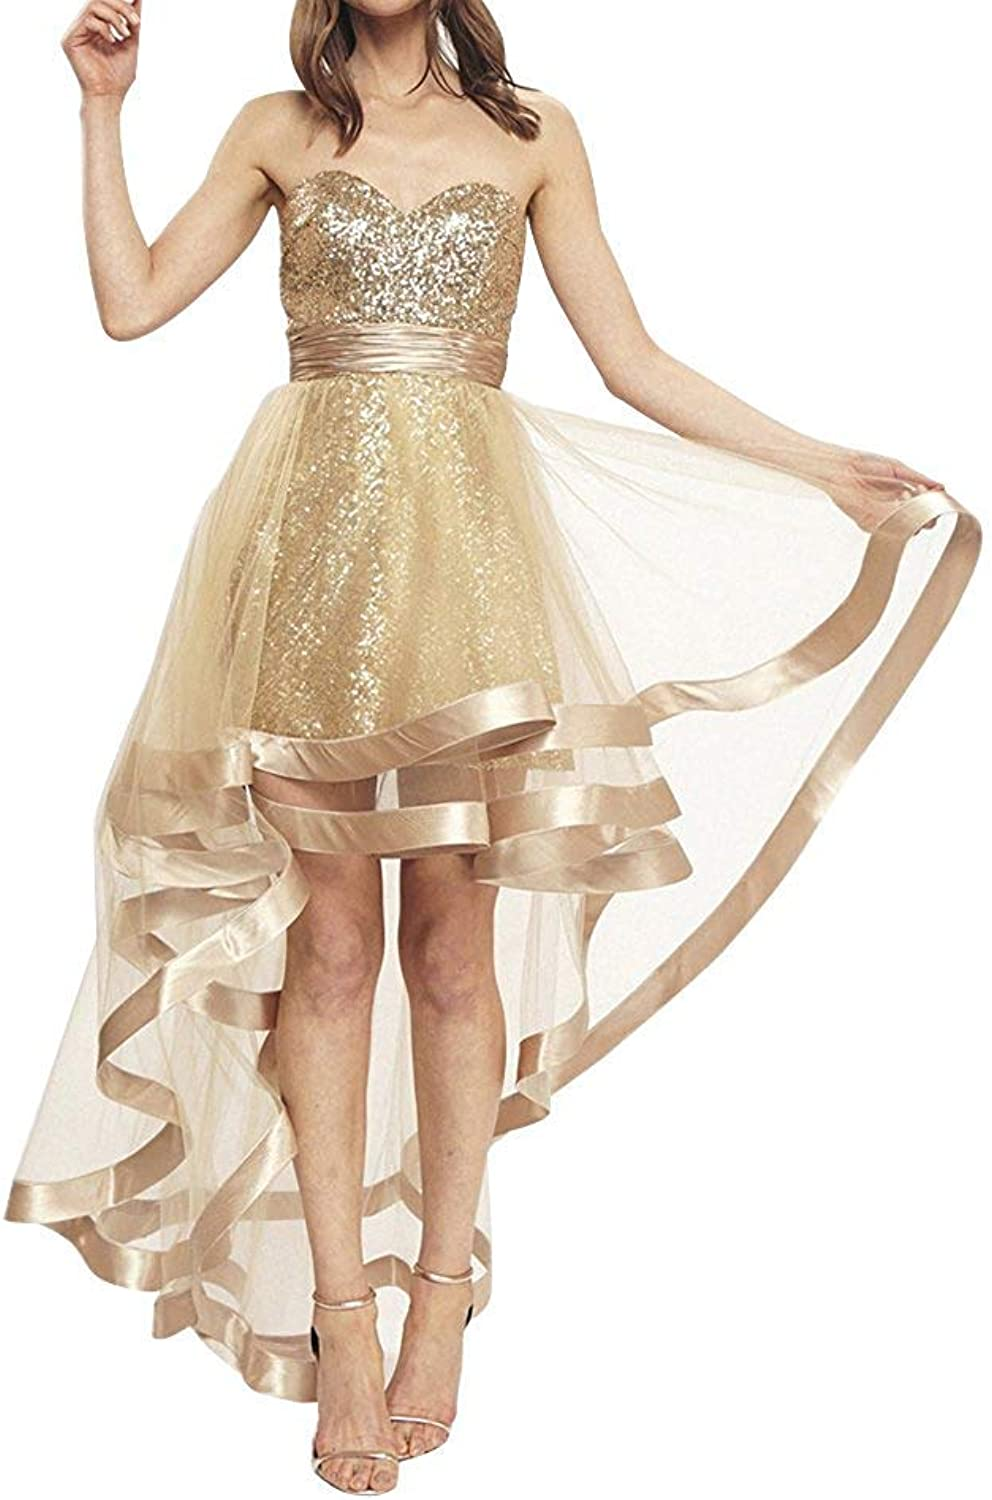 LiBridal Women's Sweetheart Sleeveless High Low Prom Dresses Sequined ALine Luxury Homecoming Dresses